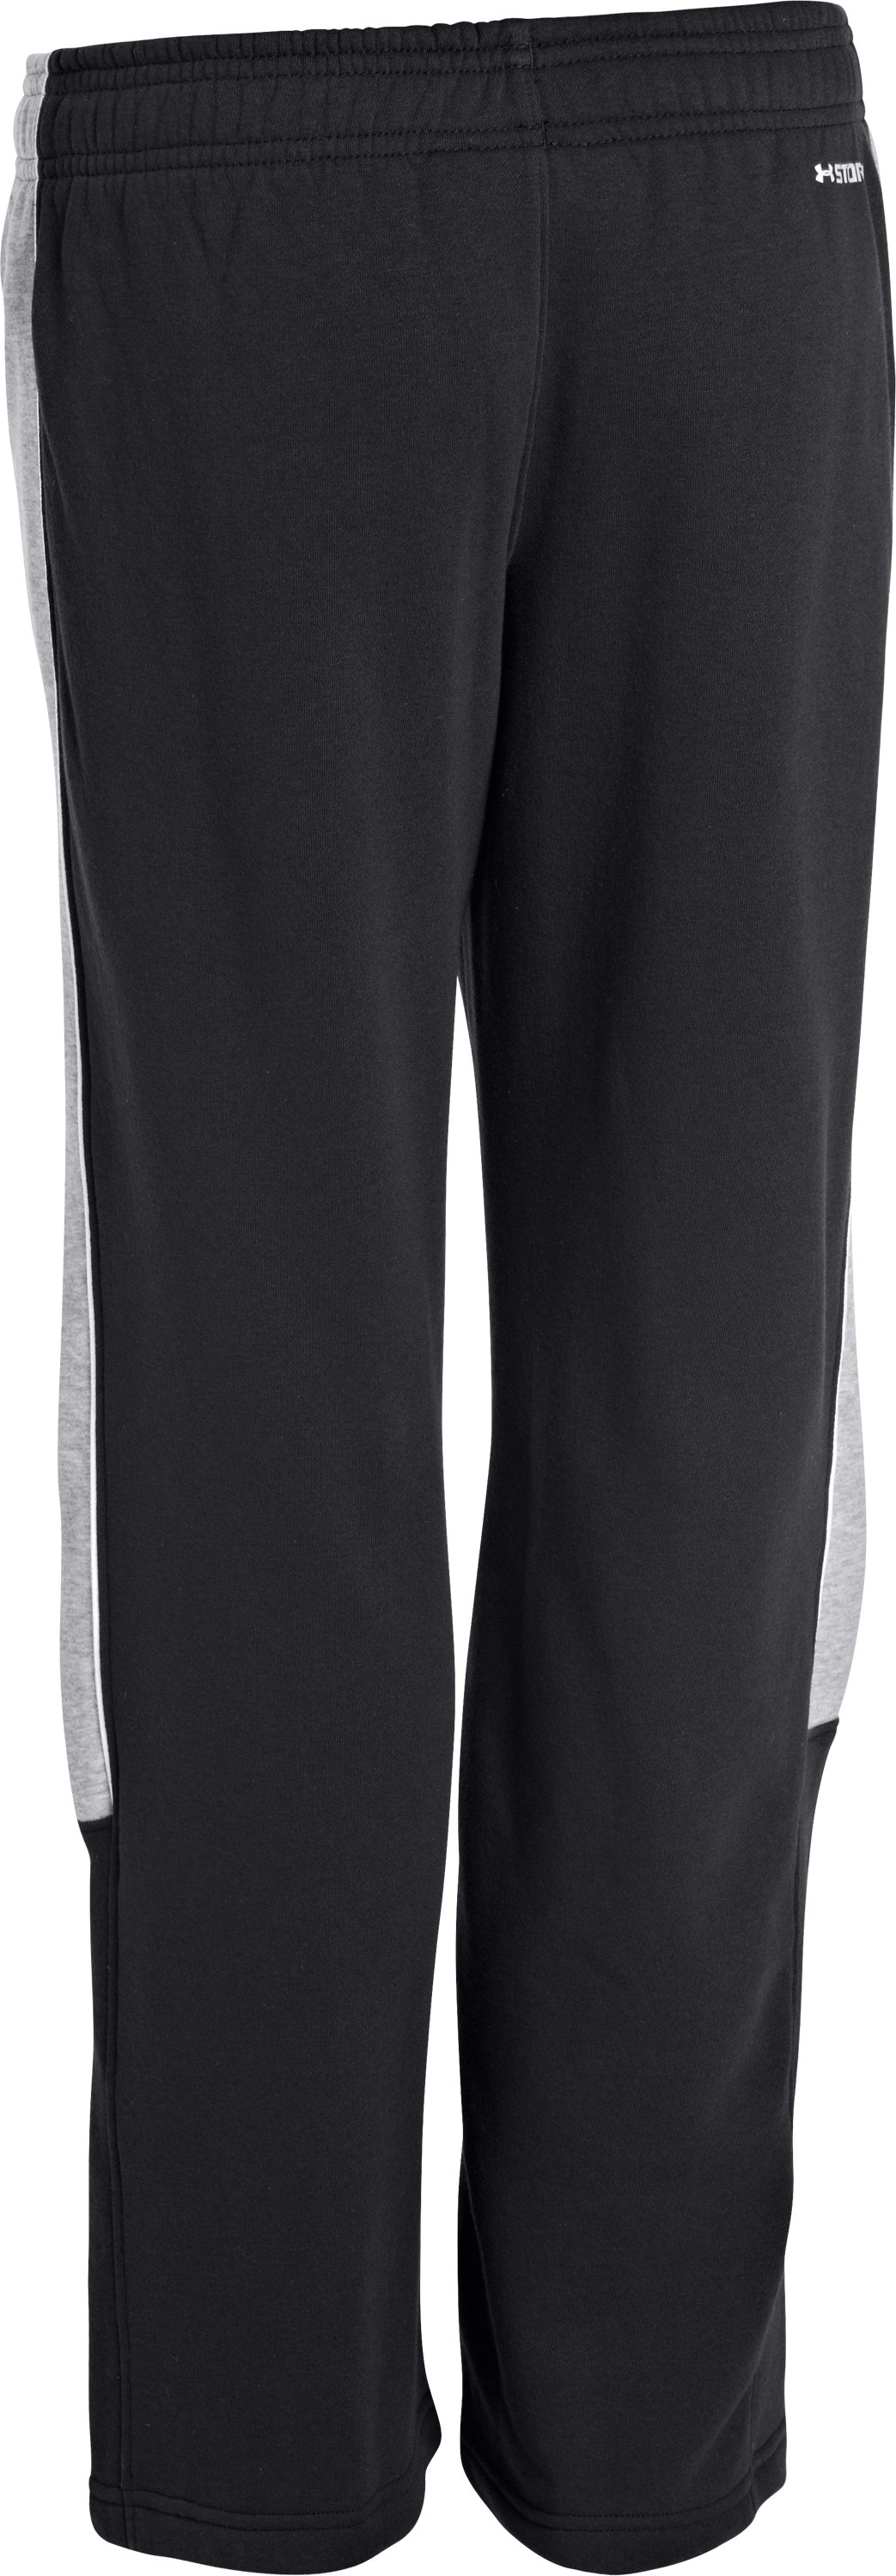 Boys' Charged Cotton® Storm Pants, Black